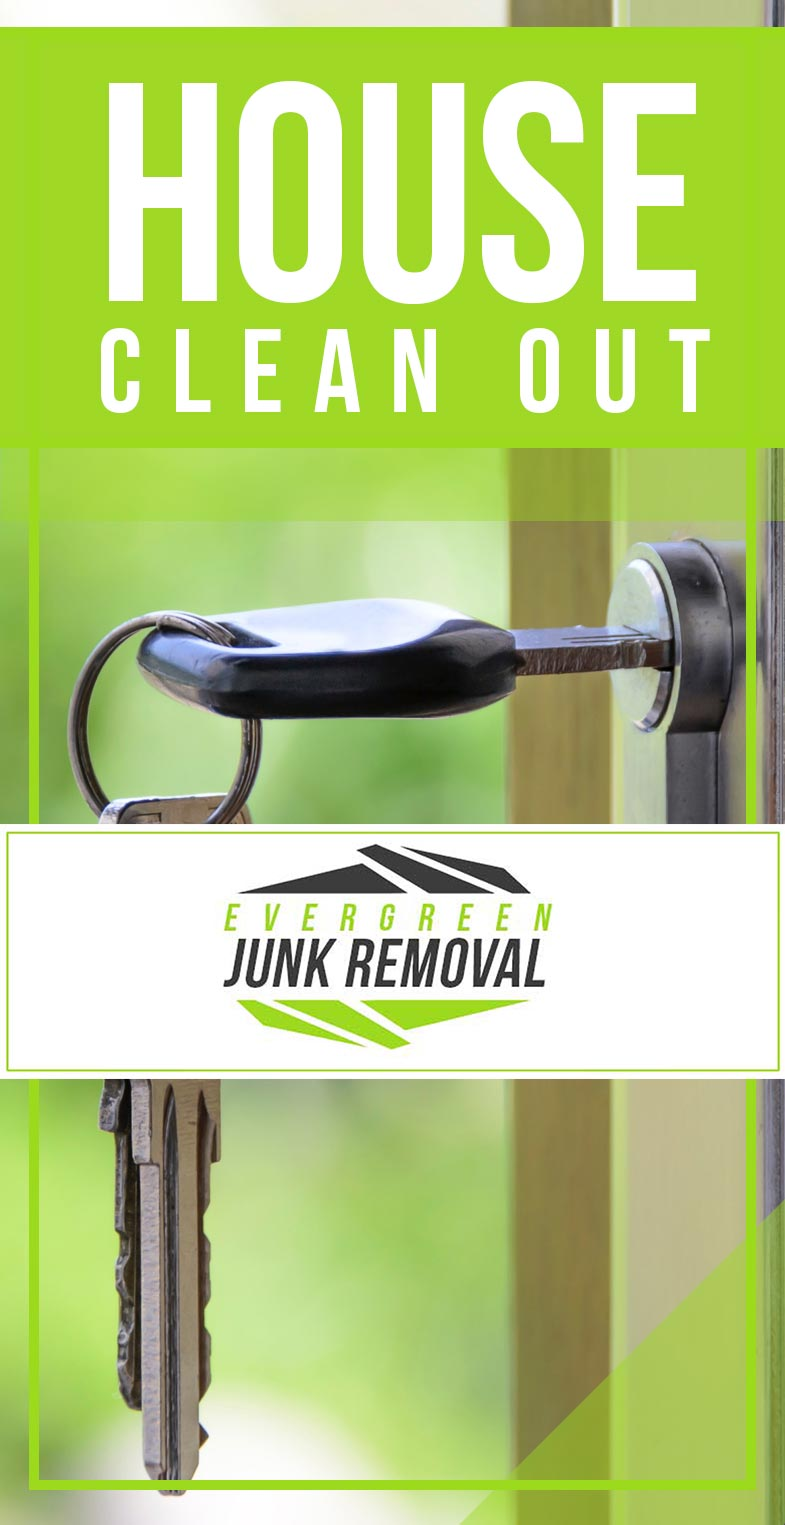 Junk Removal South Palm Beach House Clean Out